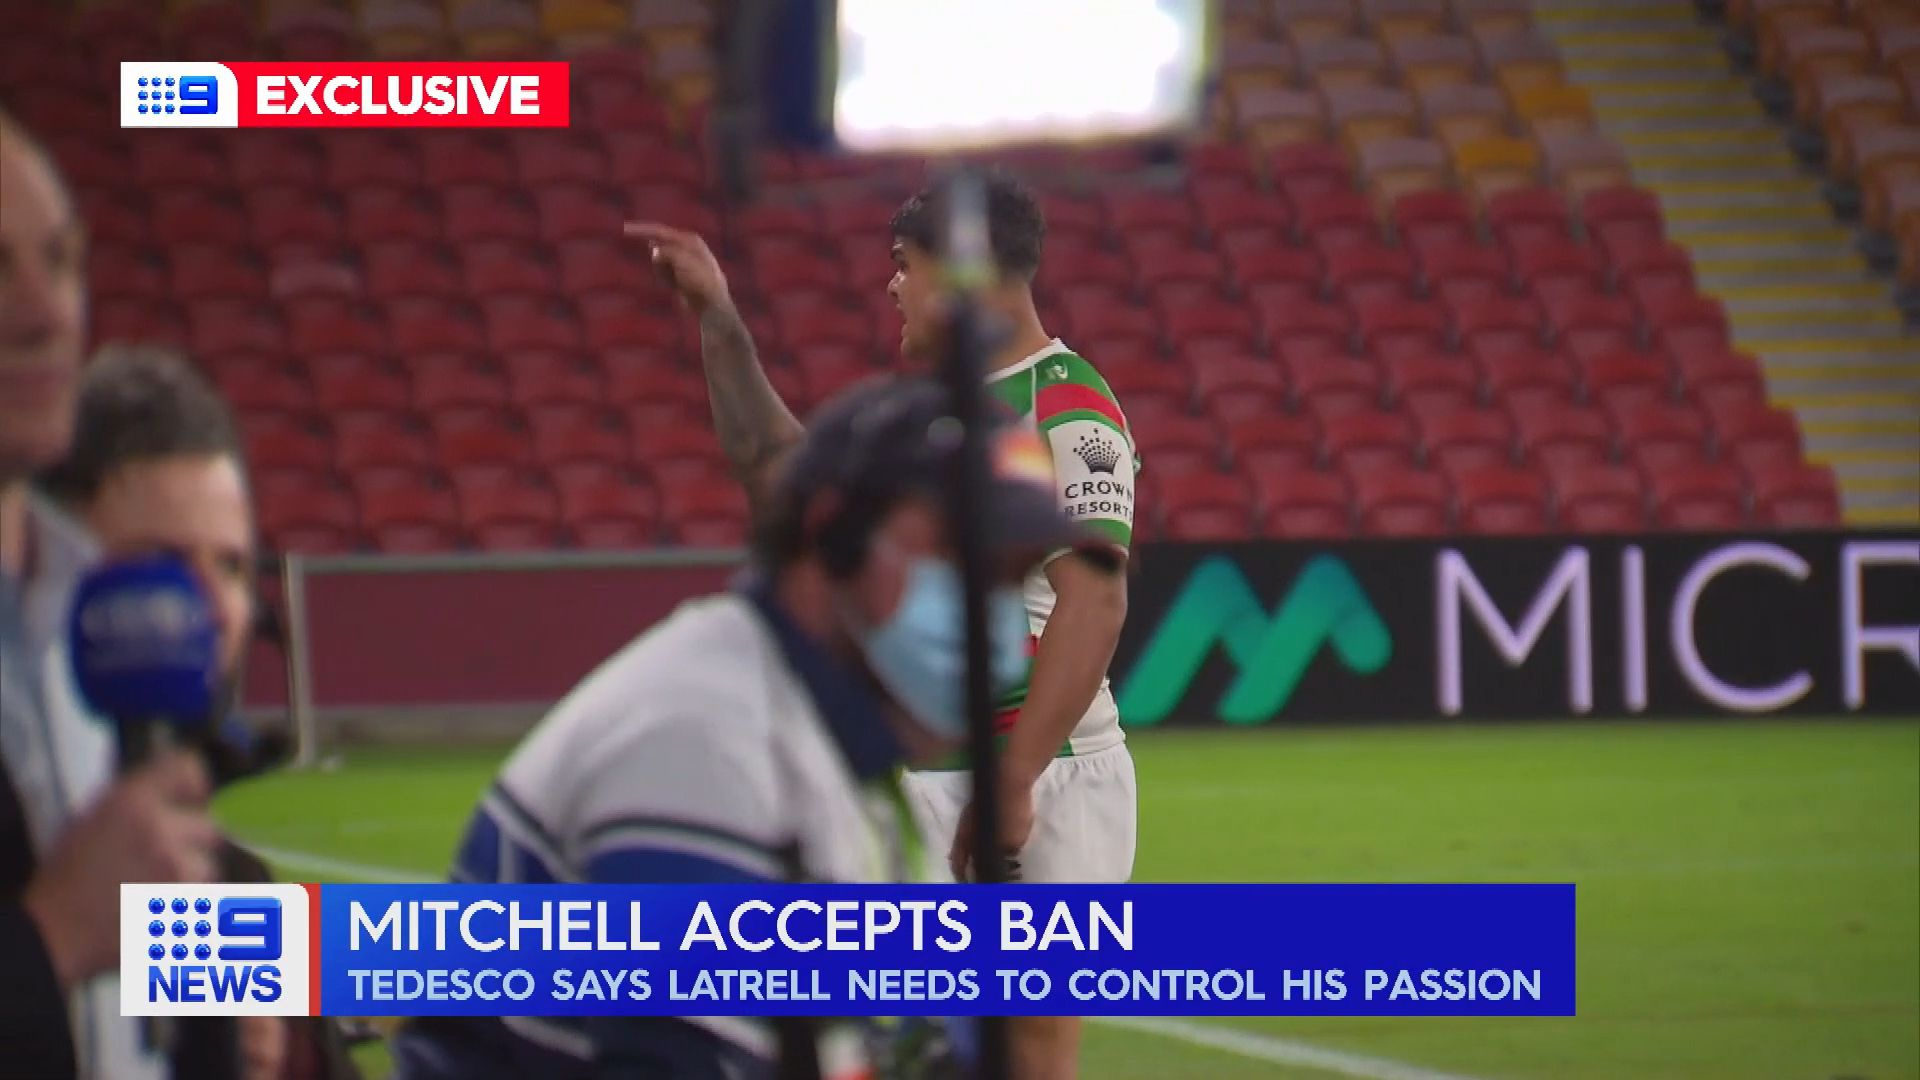 Joseph Manu's family plead for calm after brutal Latrell tackle